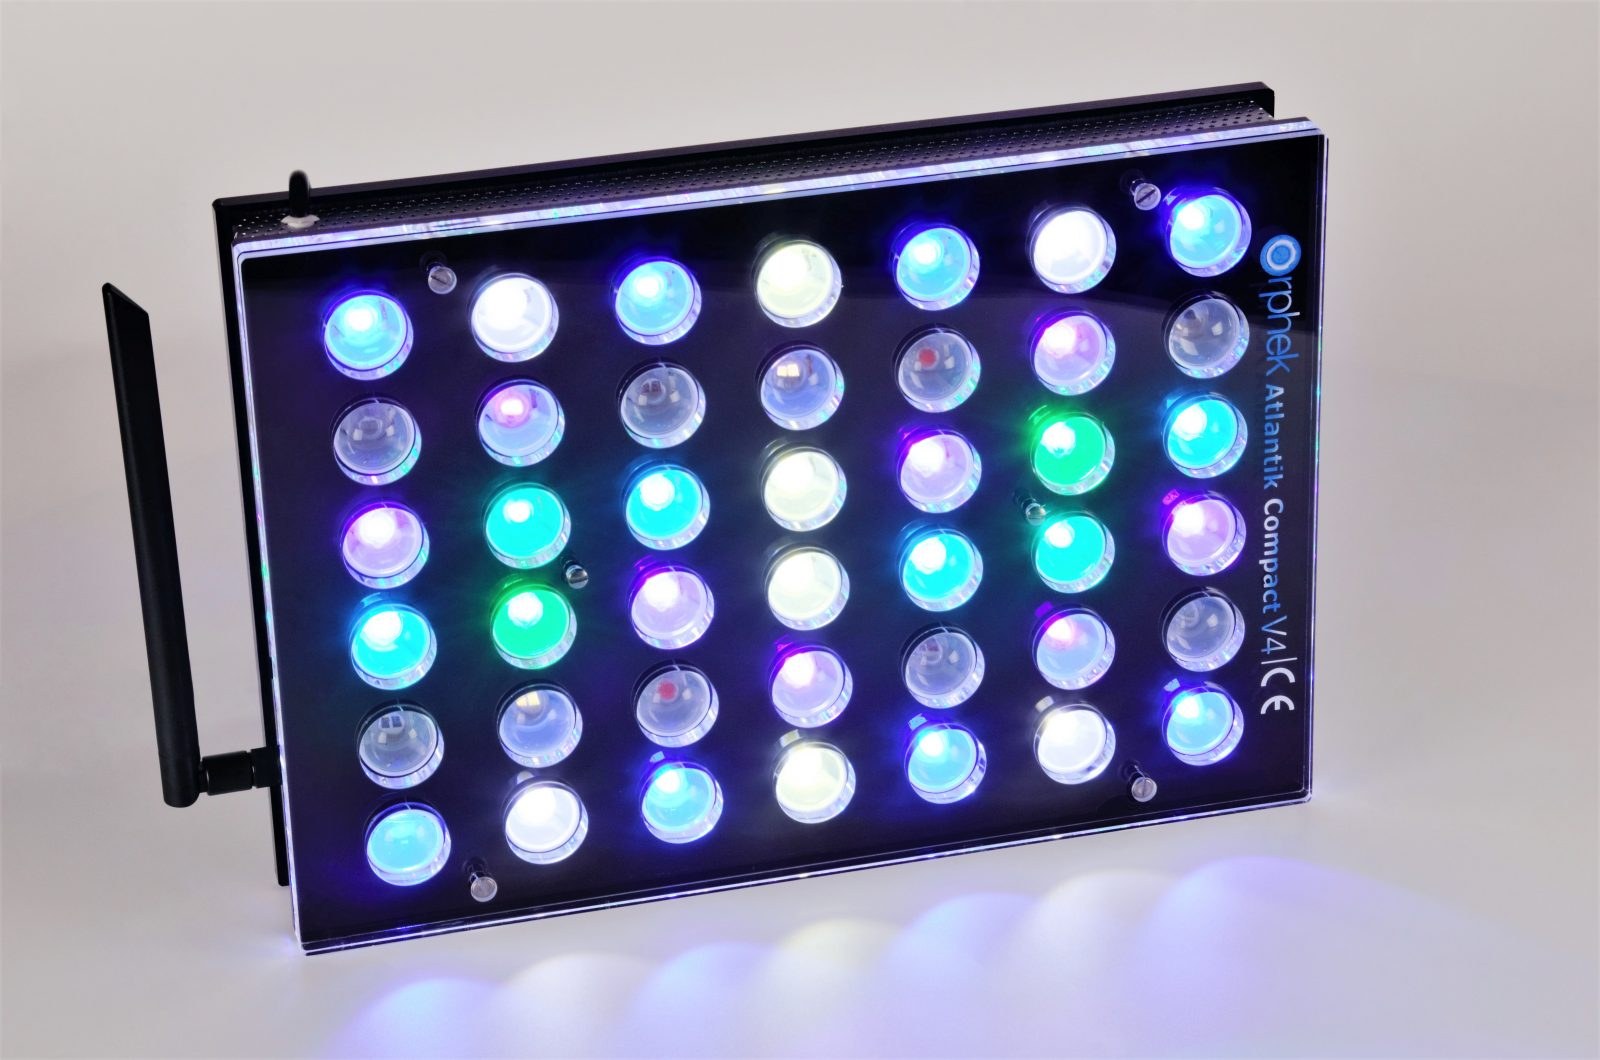 Orphek-Aquarium-LED-Lighting-Atlantik-کمپیکٹ- V4-روشنی -لینلینل 1 + 2 + 3